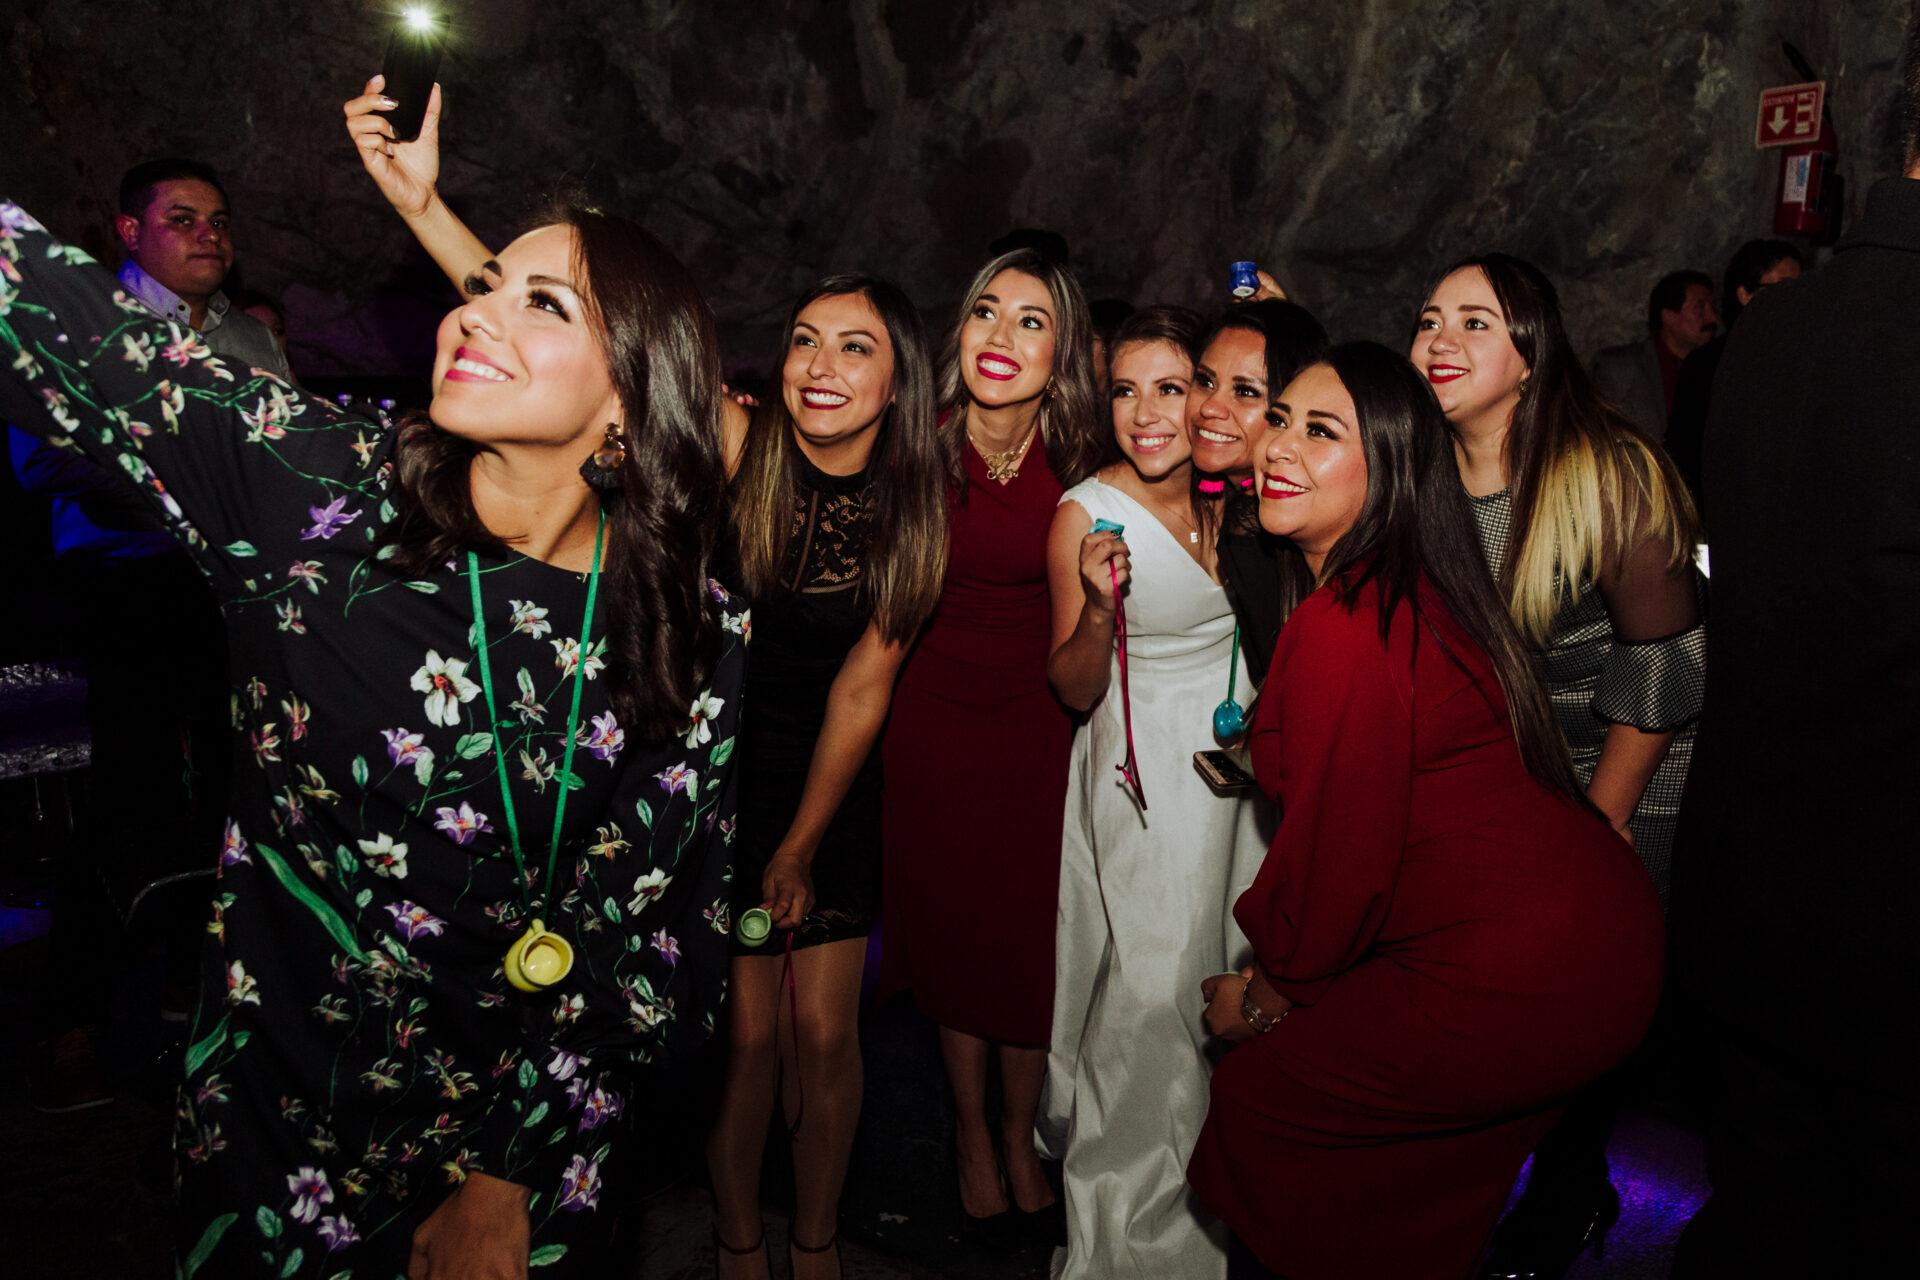 javier_noriega_fotografo_bodas_la_mina_club_zacatecas_wedding_photographer24